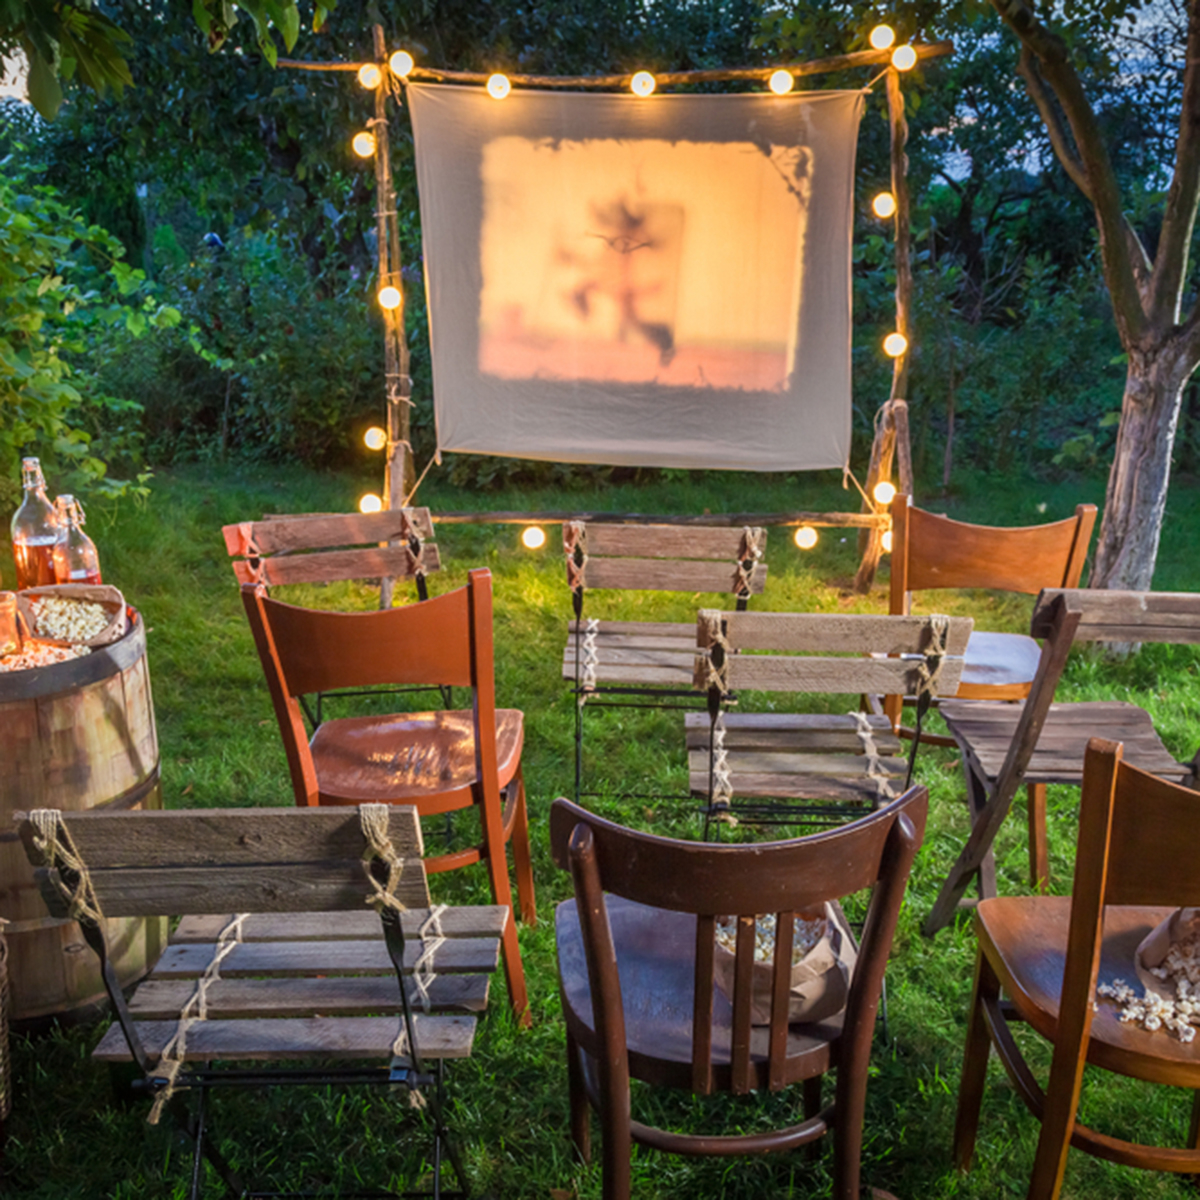 10 Fun Ideas For Outdoor Movie Night Taste Of Home within 14 Clever Ideas How to Make Backyard Theater Ideas